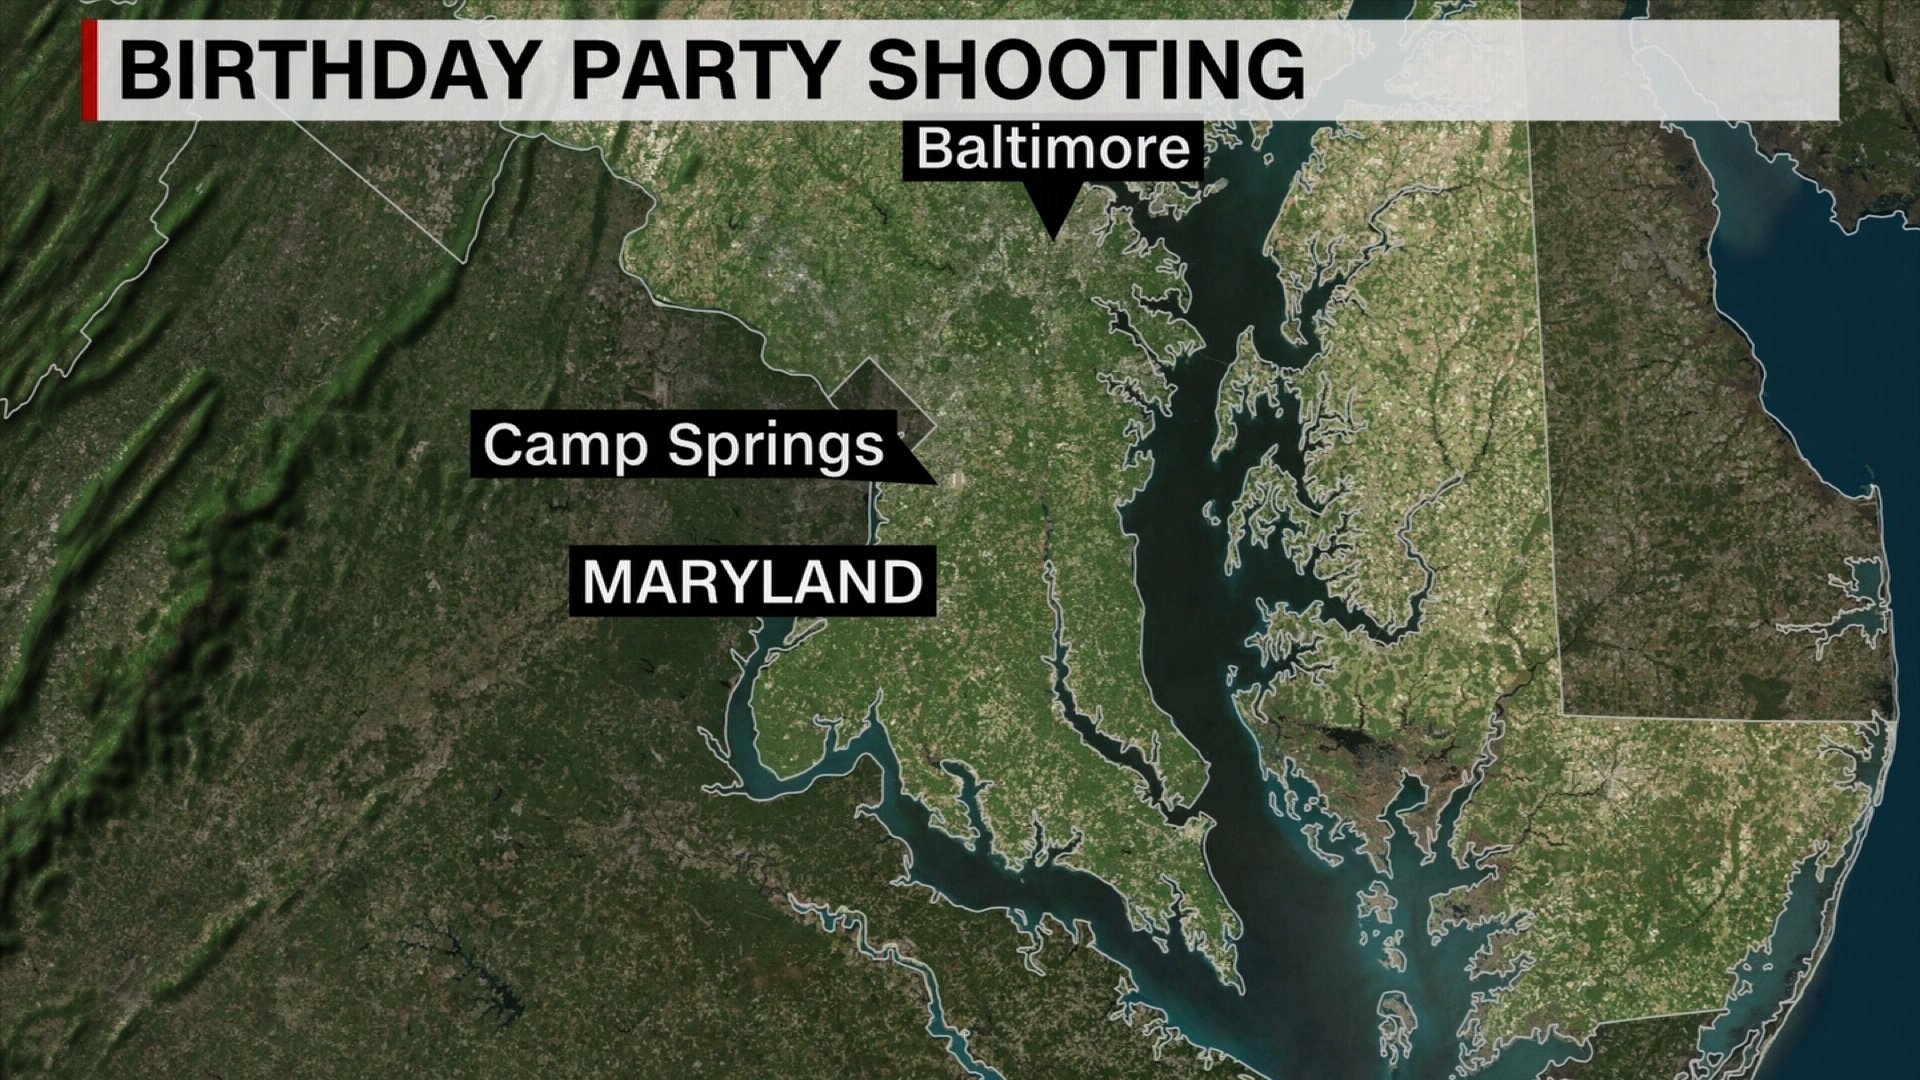 7 people were shot at 2-year-old's birthday party in Maryland, police say